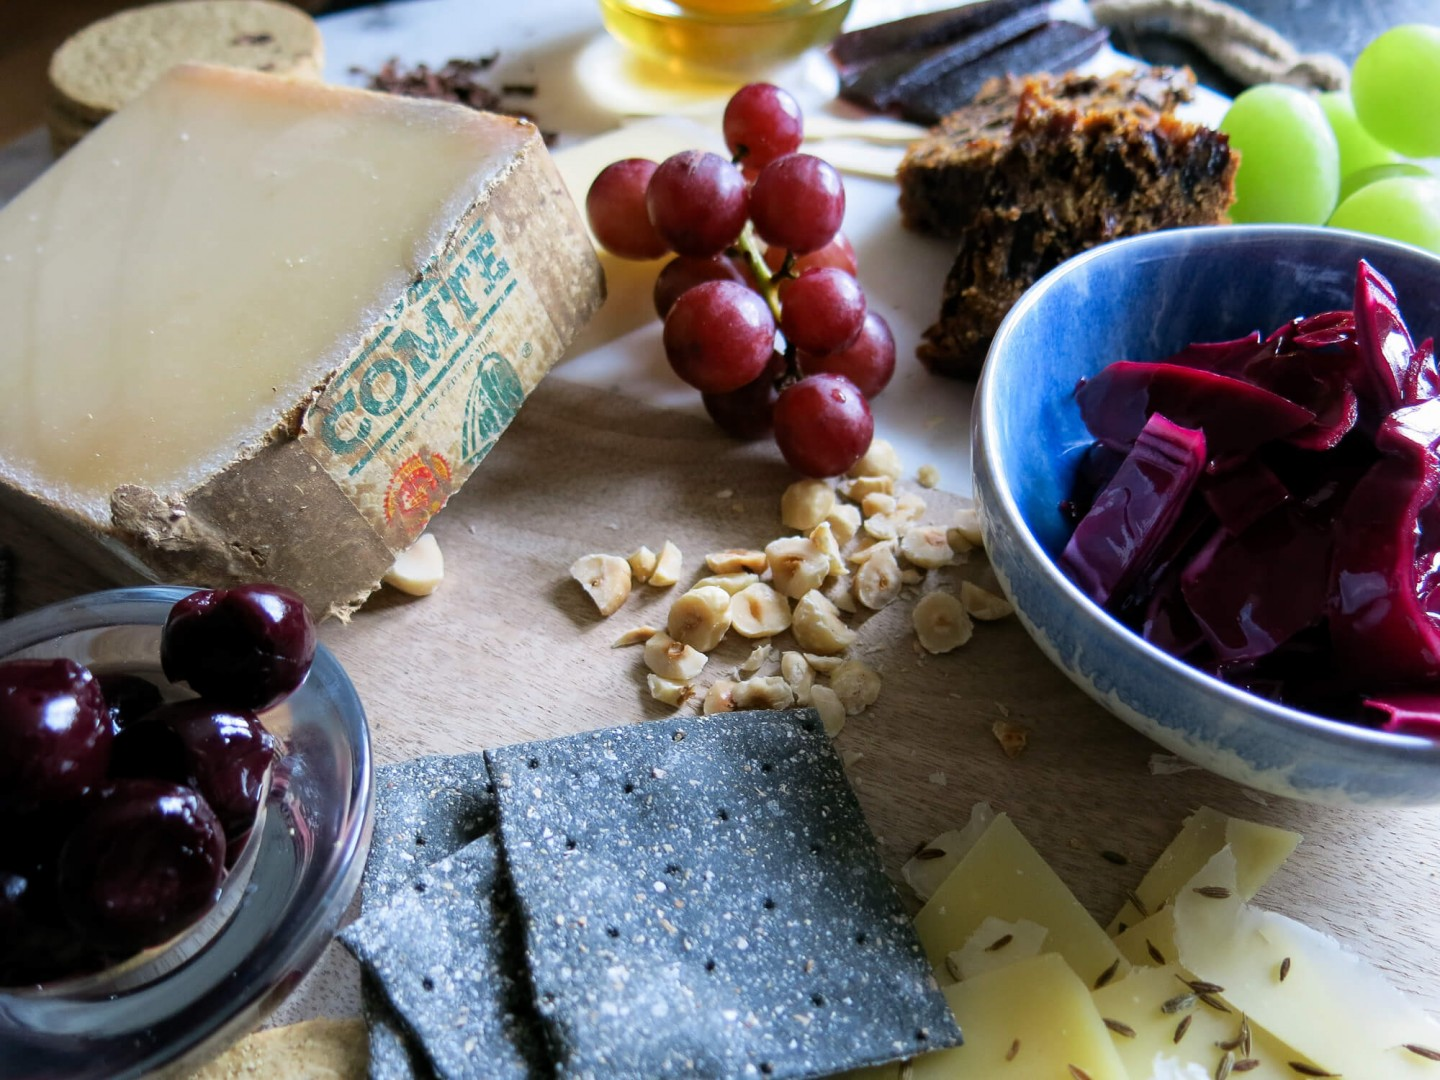 Tip and tricks on how to create the best cheeseboard for Christmas.